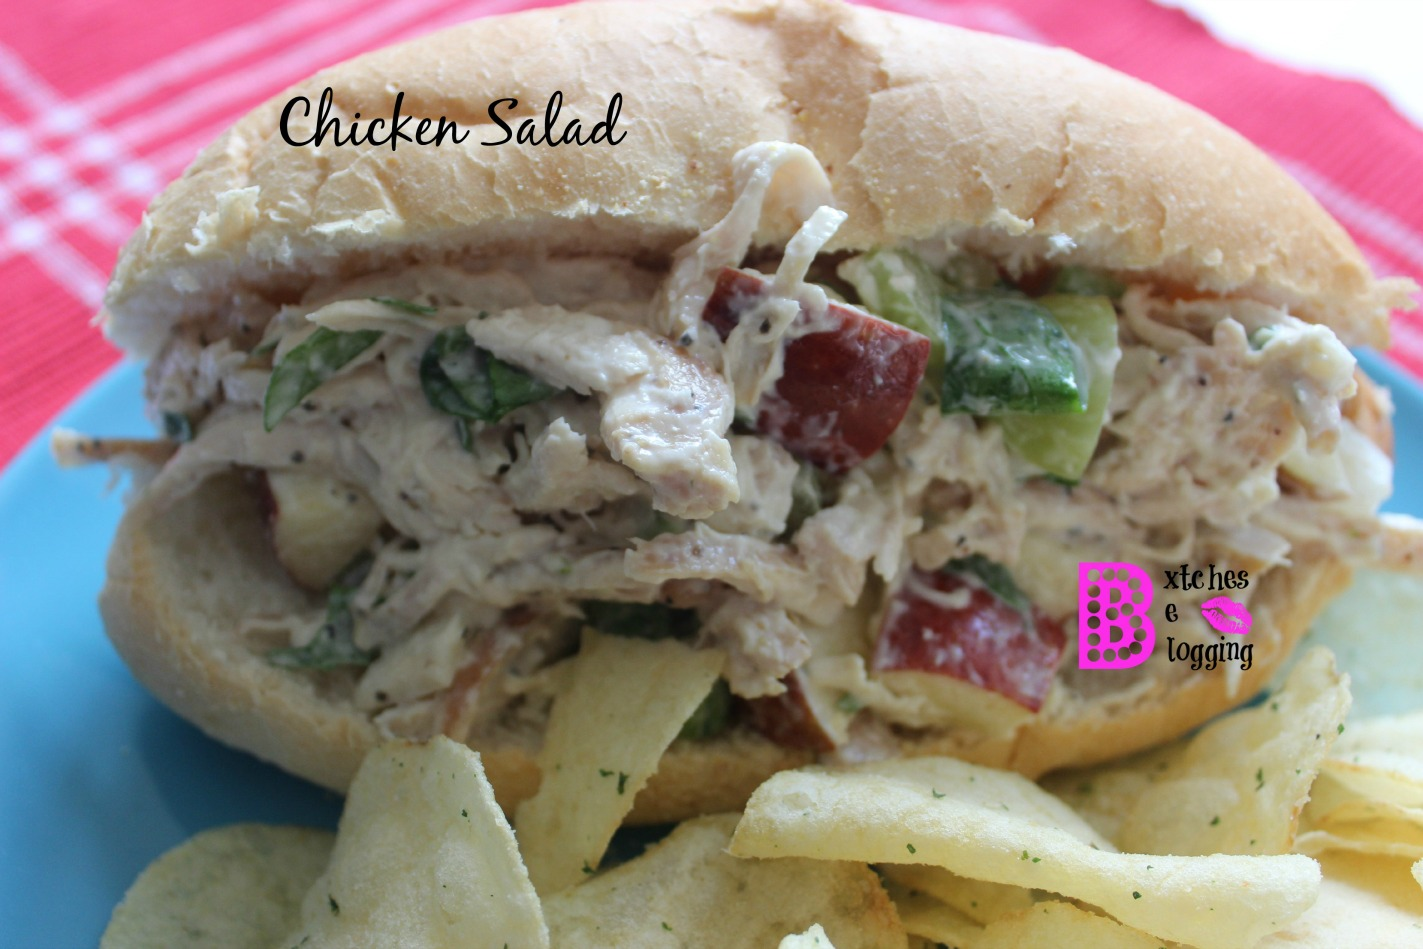 Another Chicken Salad | Recipe on www.bxtchesbeblogging.com